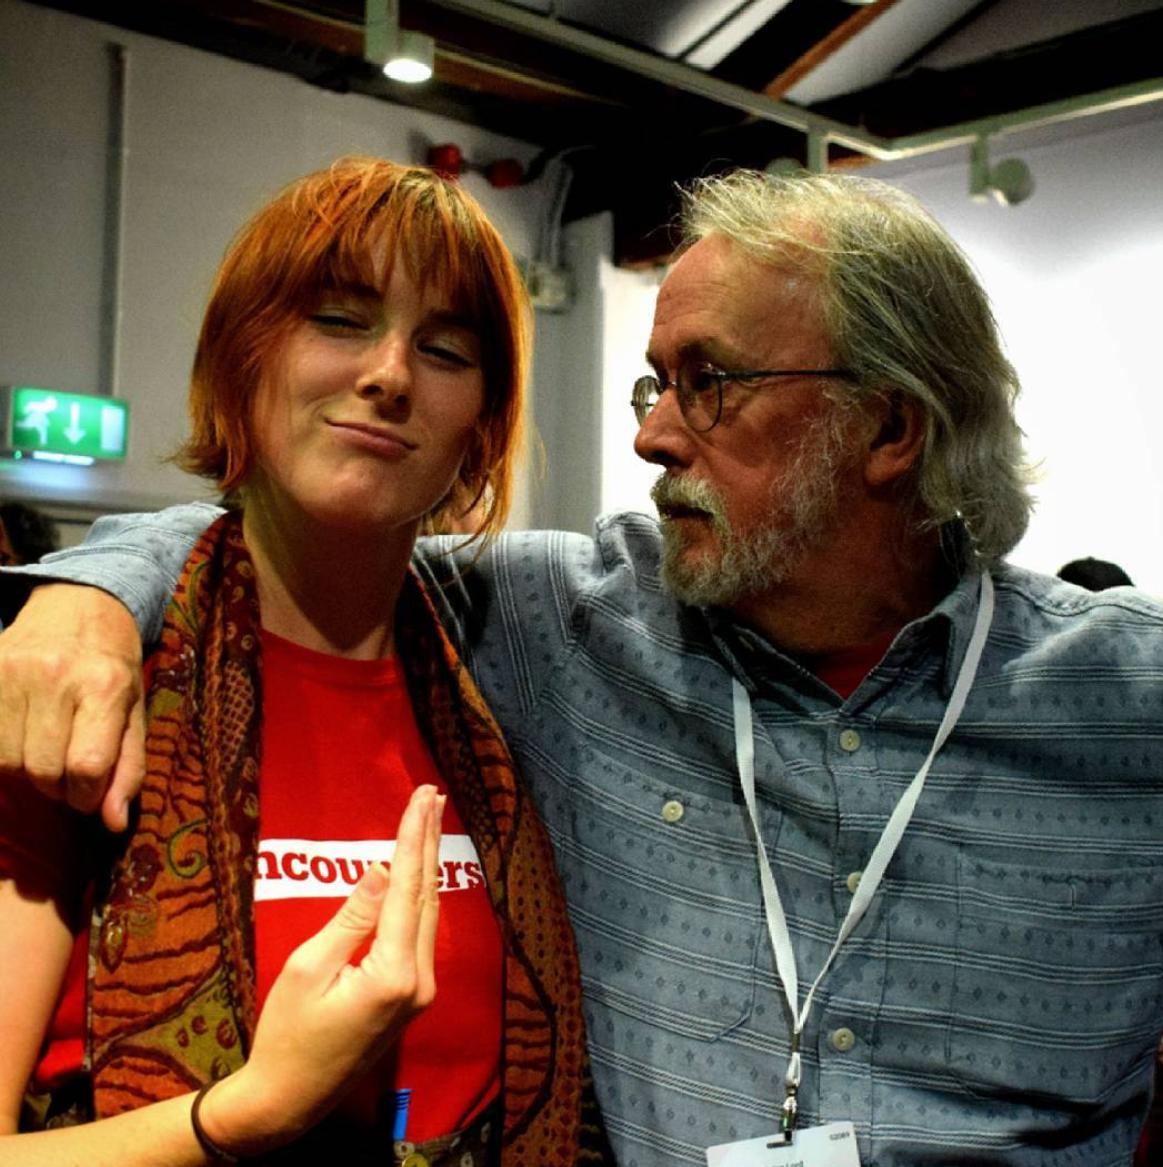 Lila hanging out with  Aardman's  Peter Lord at  Encounters Film Festival.